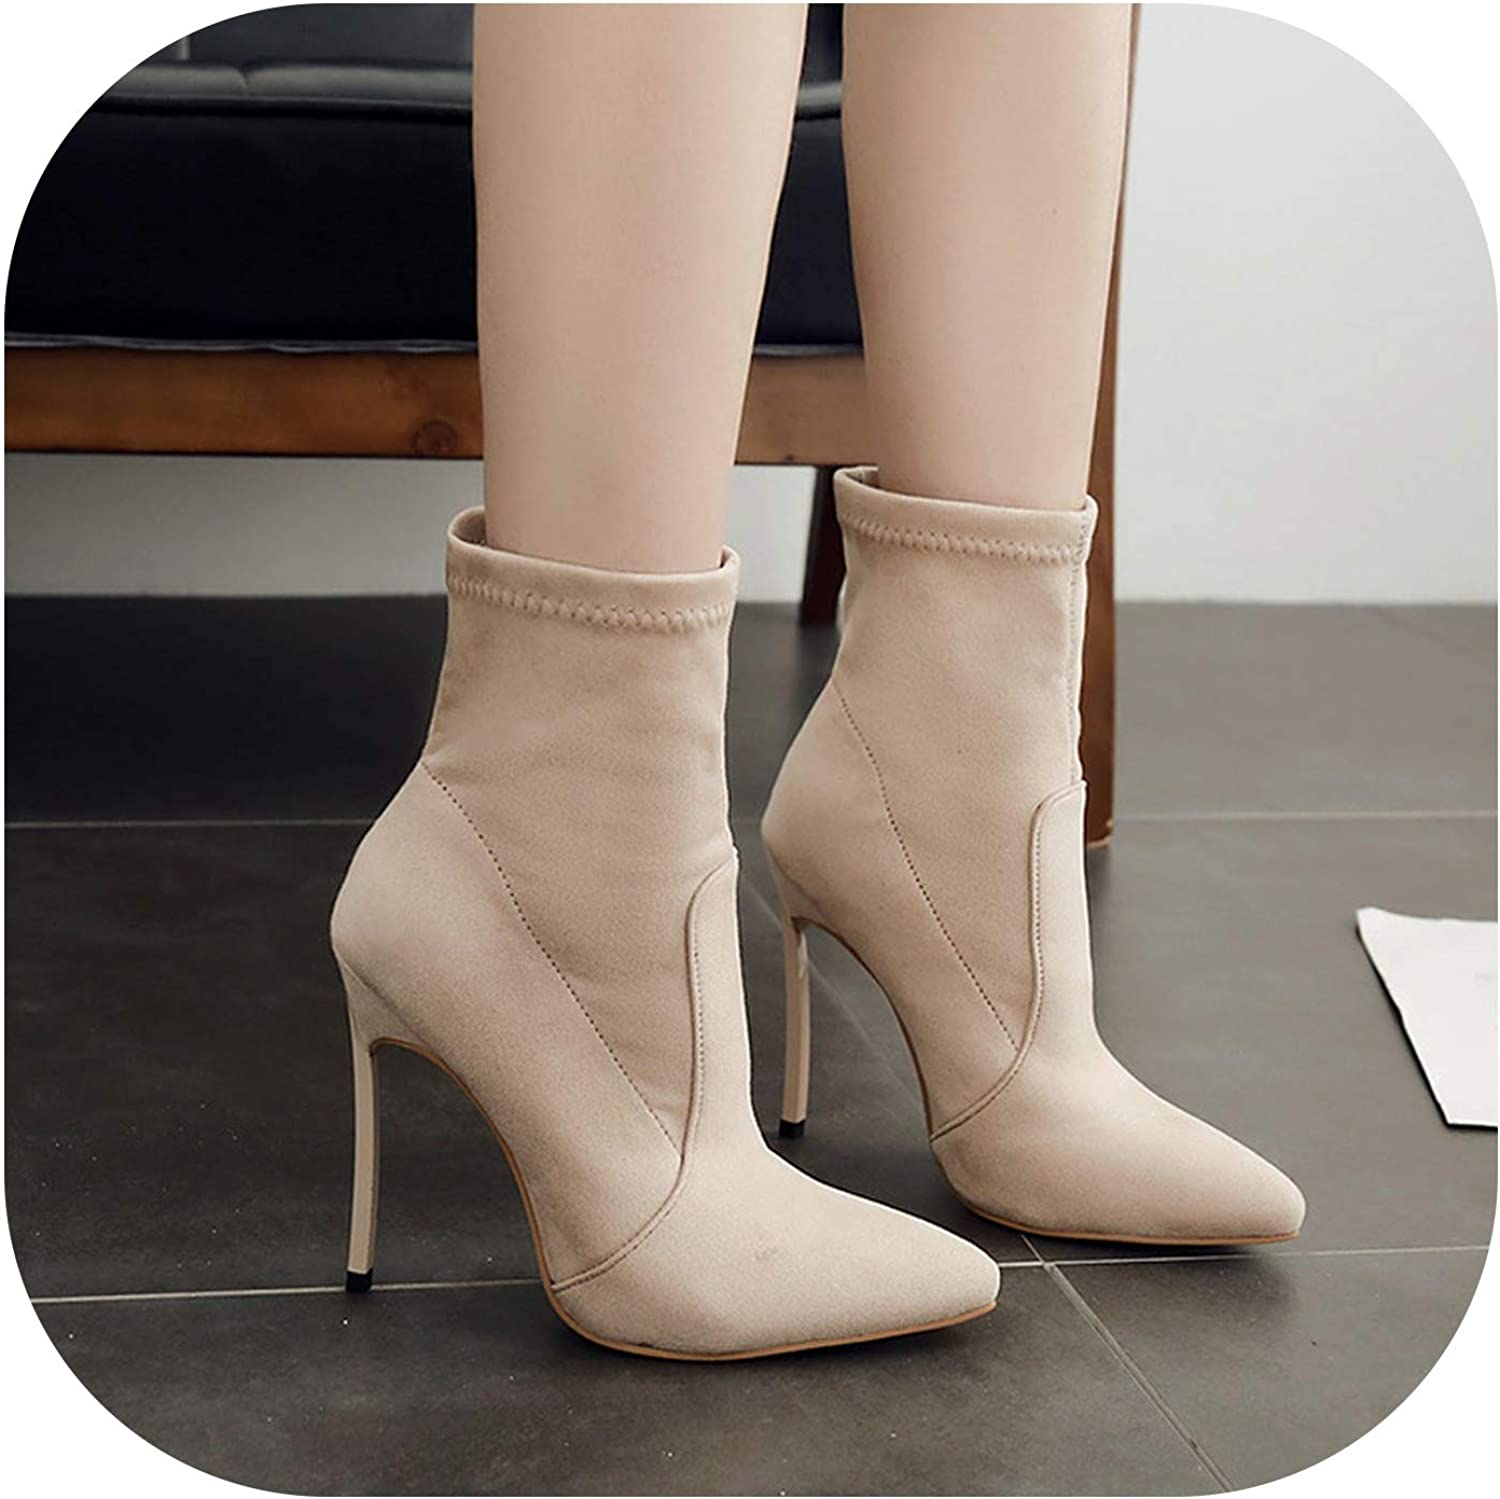 LittleBeautiful Sandals Women's shoes 42 Models Ladies Short Boots Stretch Cloth Pointed Fine Ultra High Heel High Boots